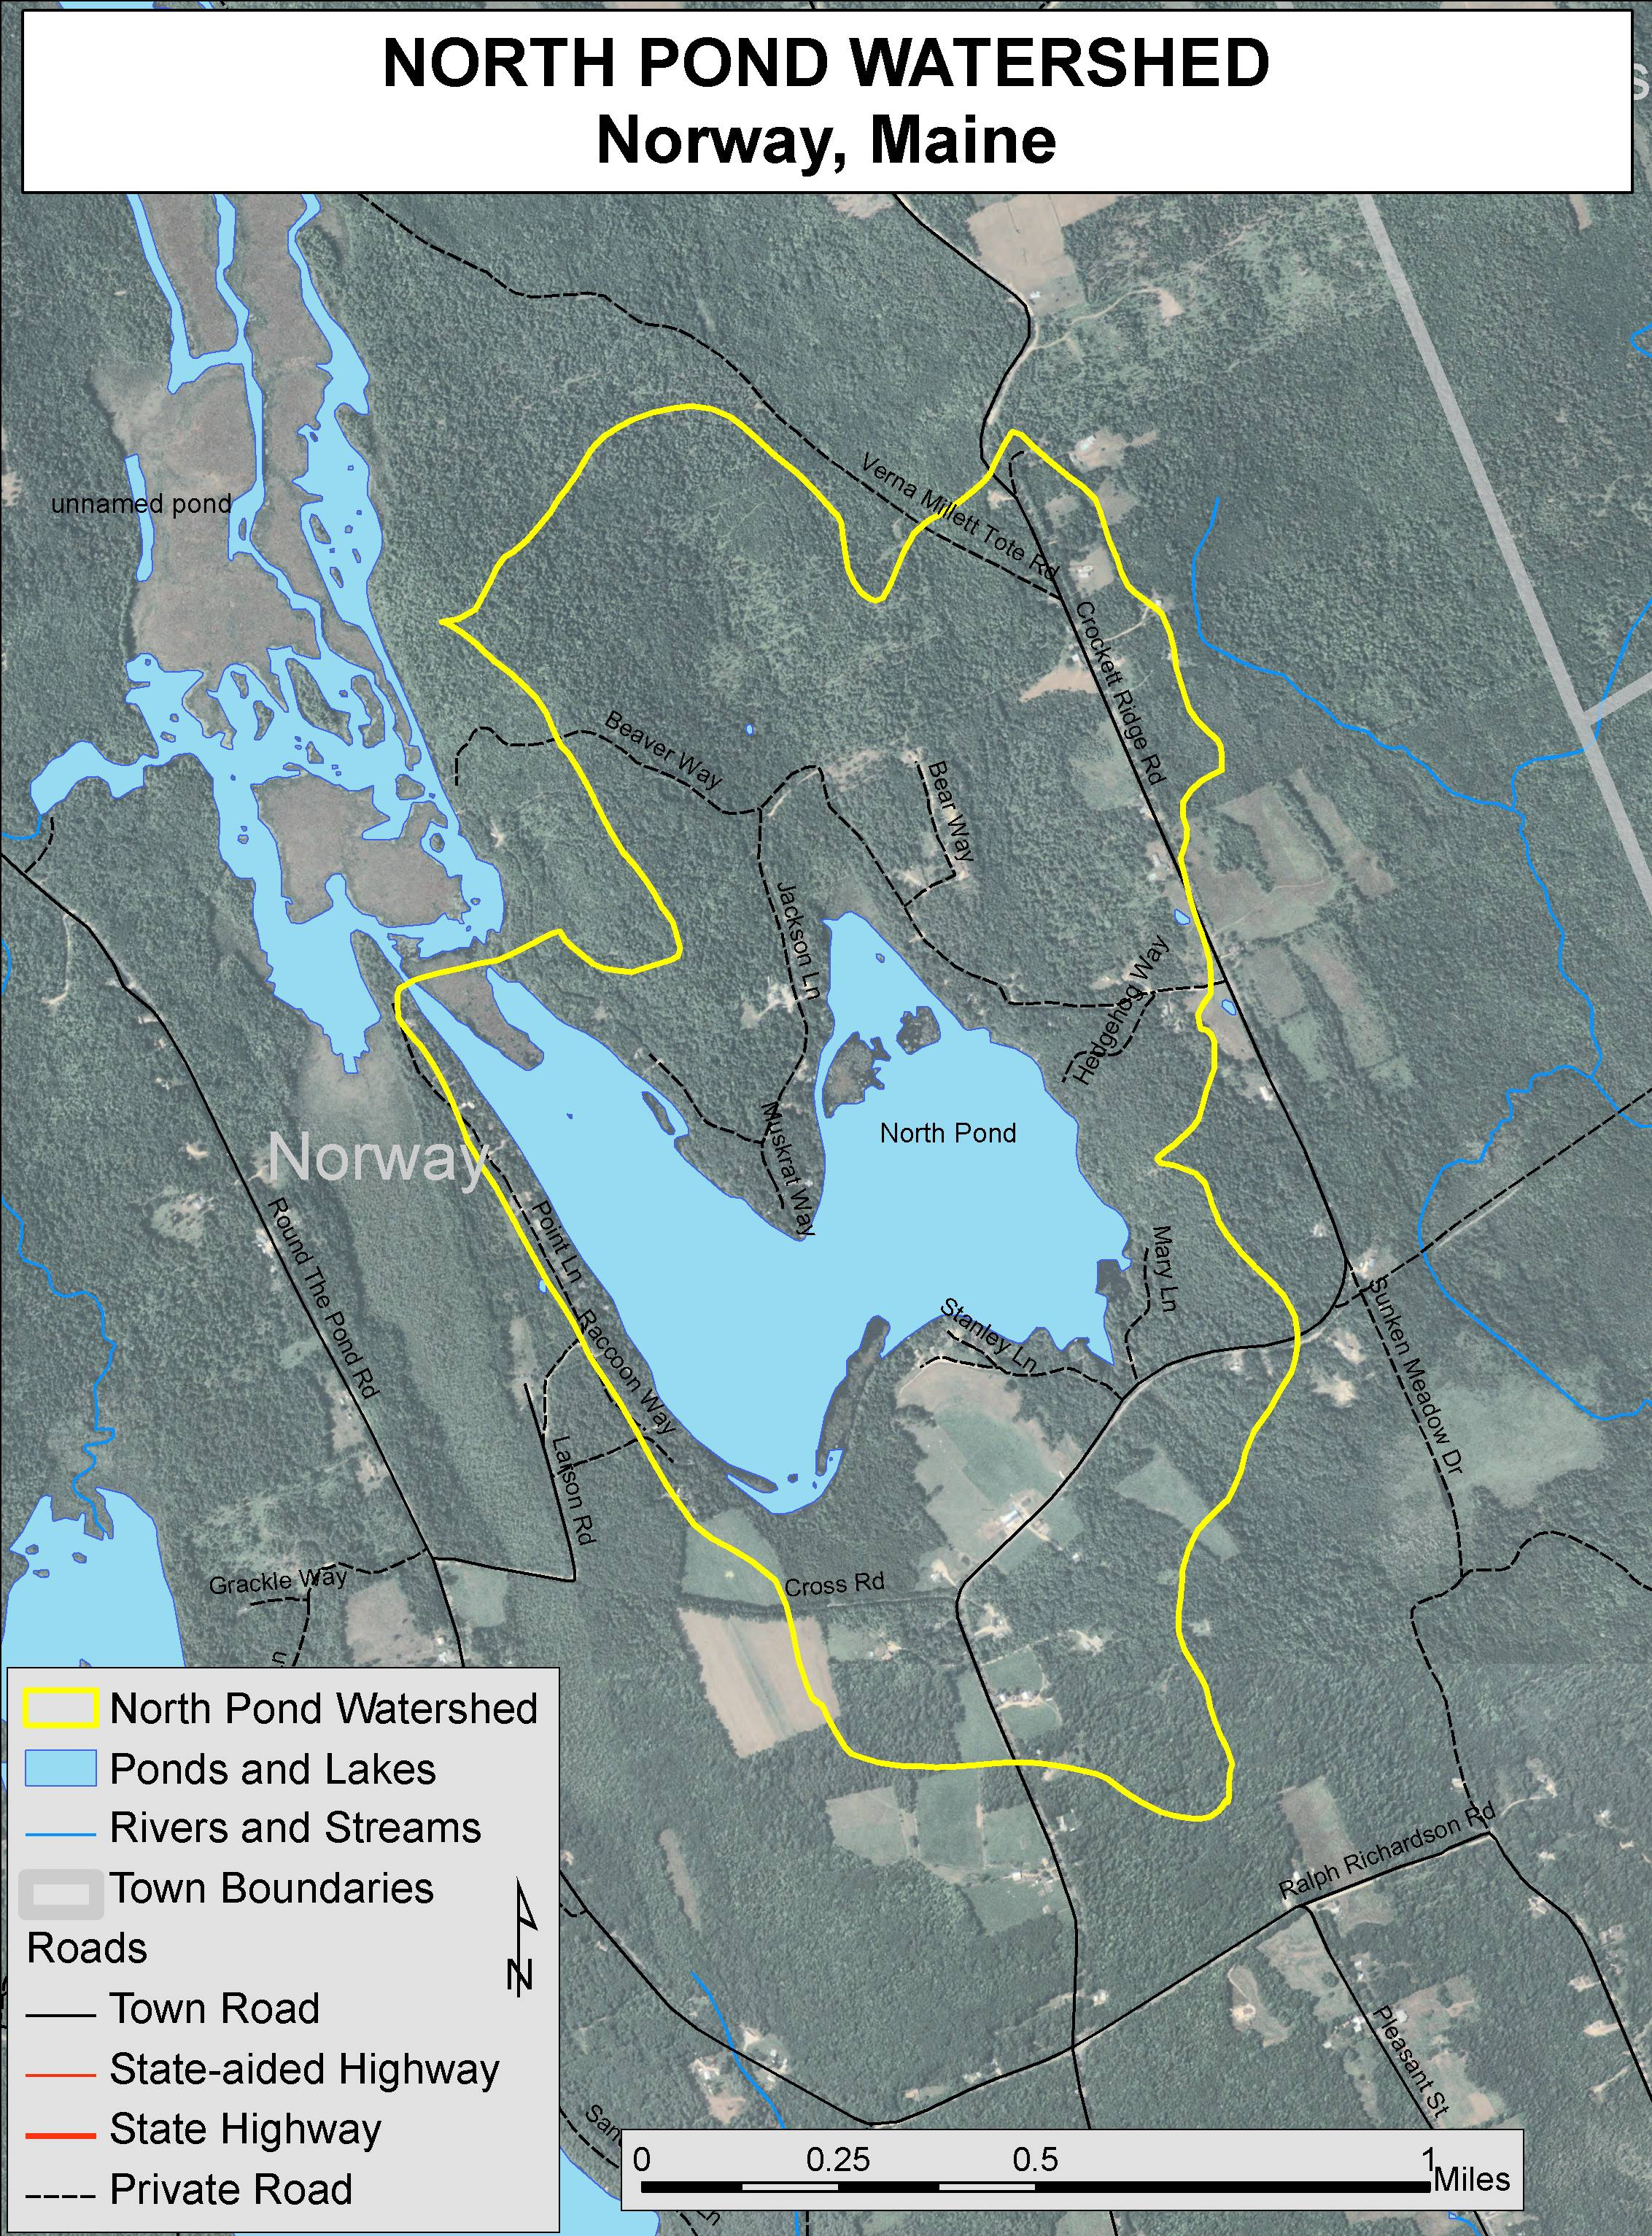 Lakes Of Maine Lake Overview North Pond Norway Oxford Maine - Norway lakes map